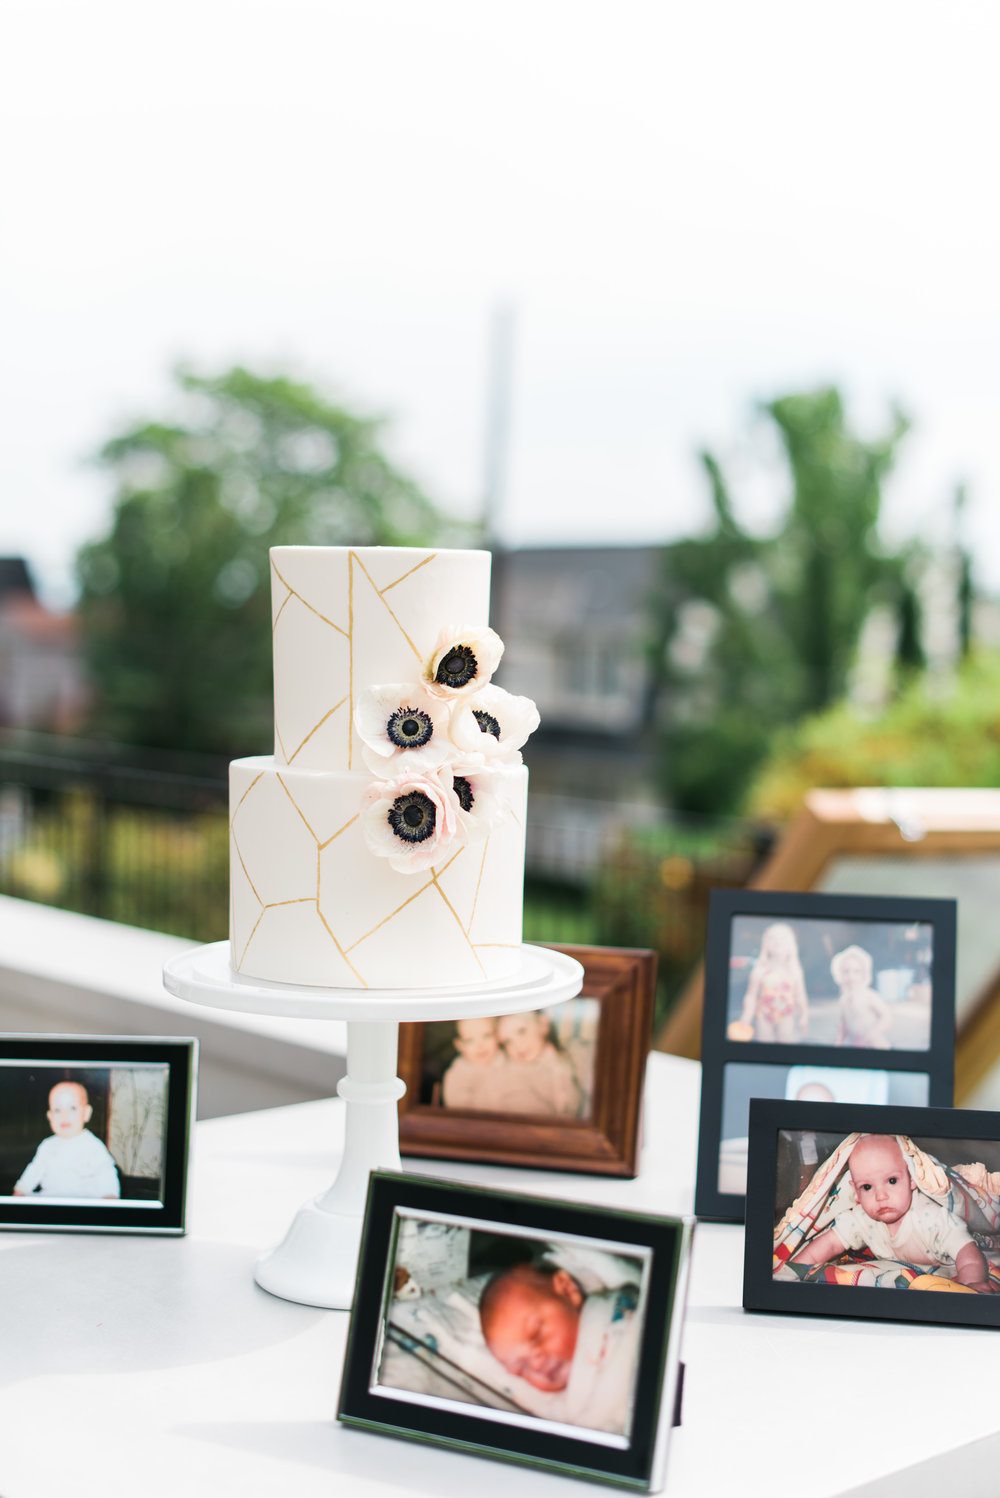 Bridalbliss.com | Portland Wedding | Oregon Event Planning and Design | Deyla Huss Photography |